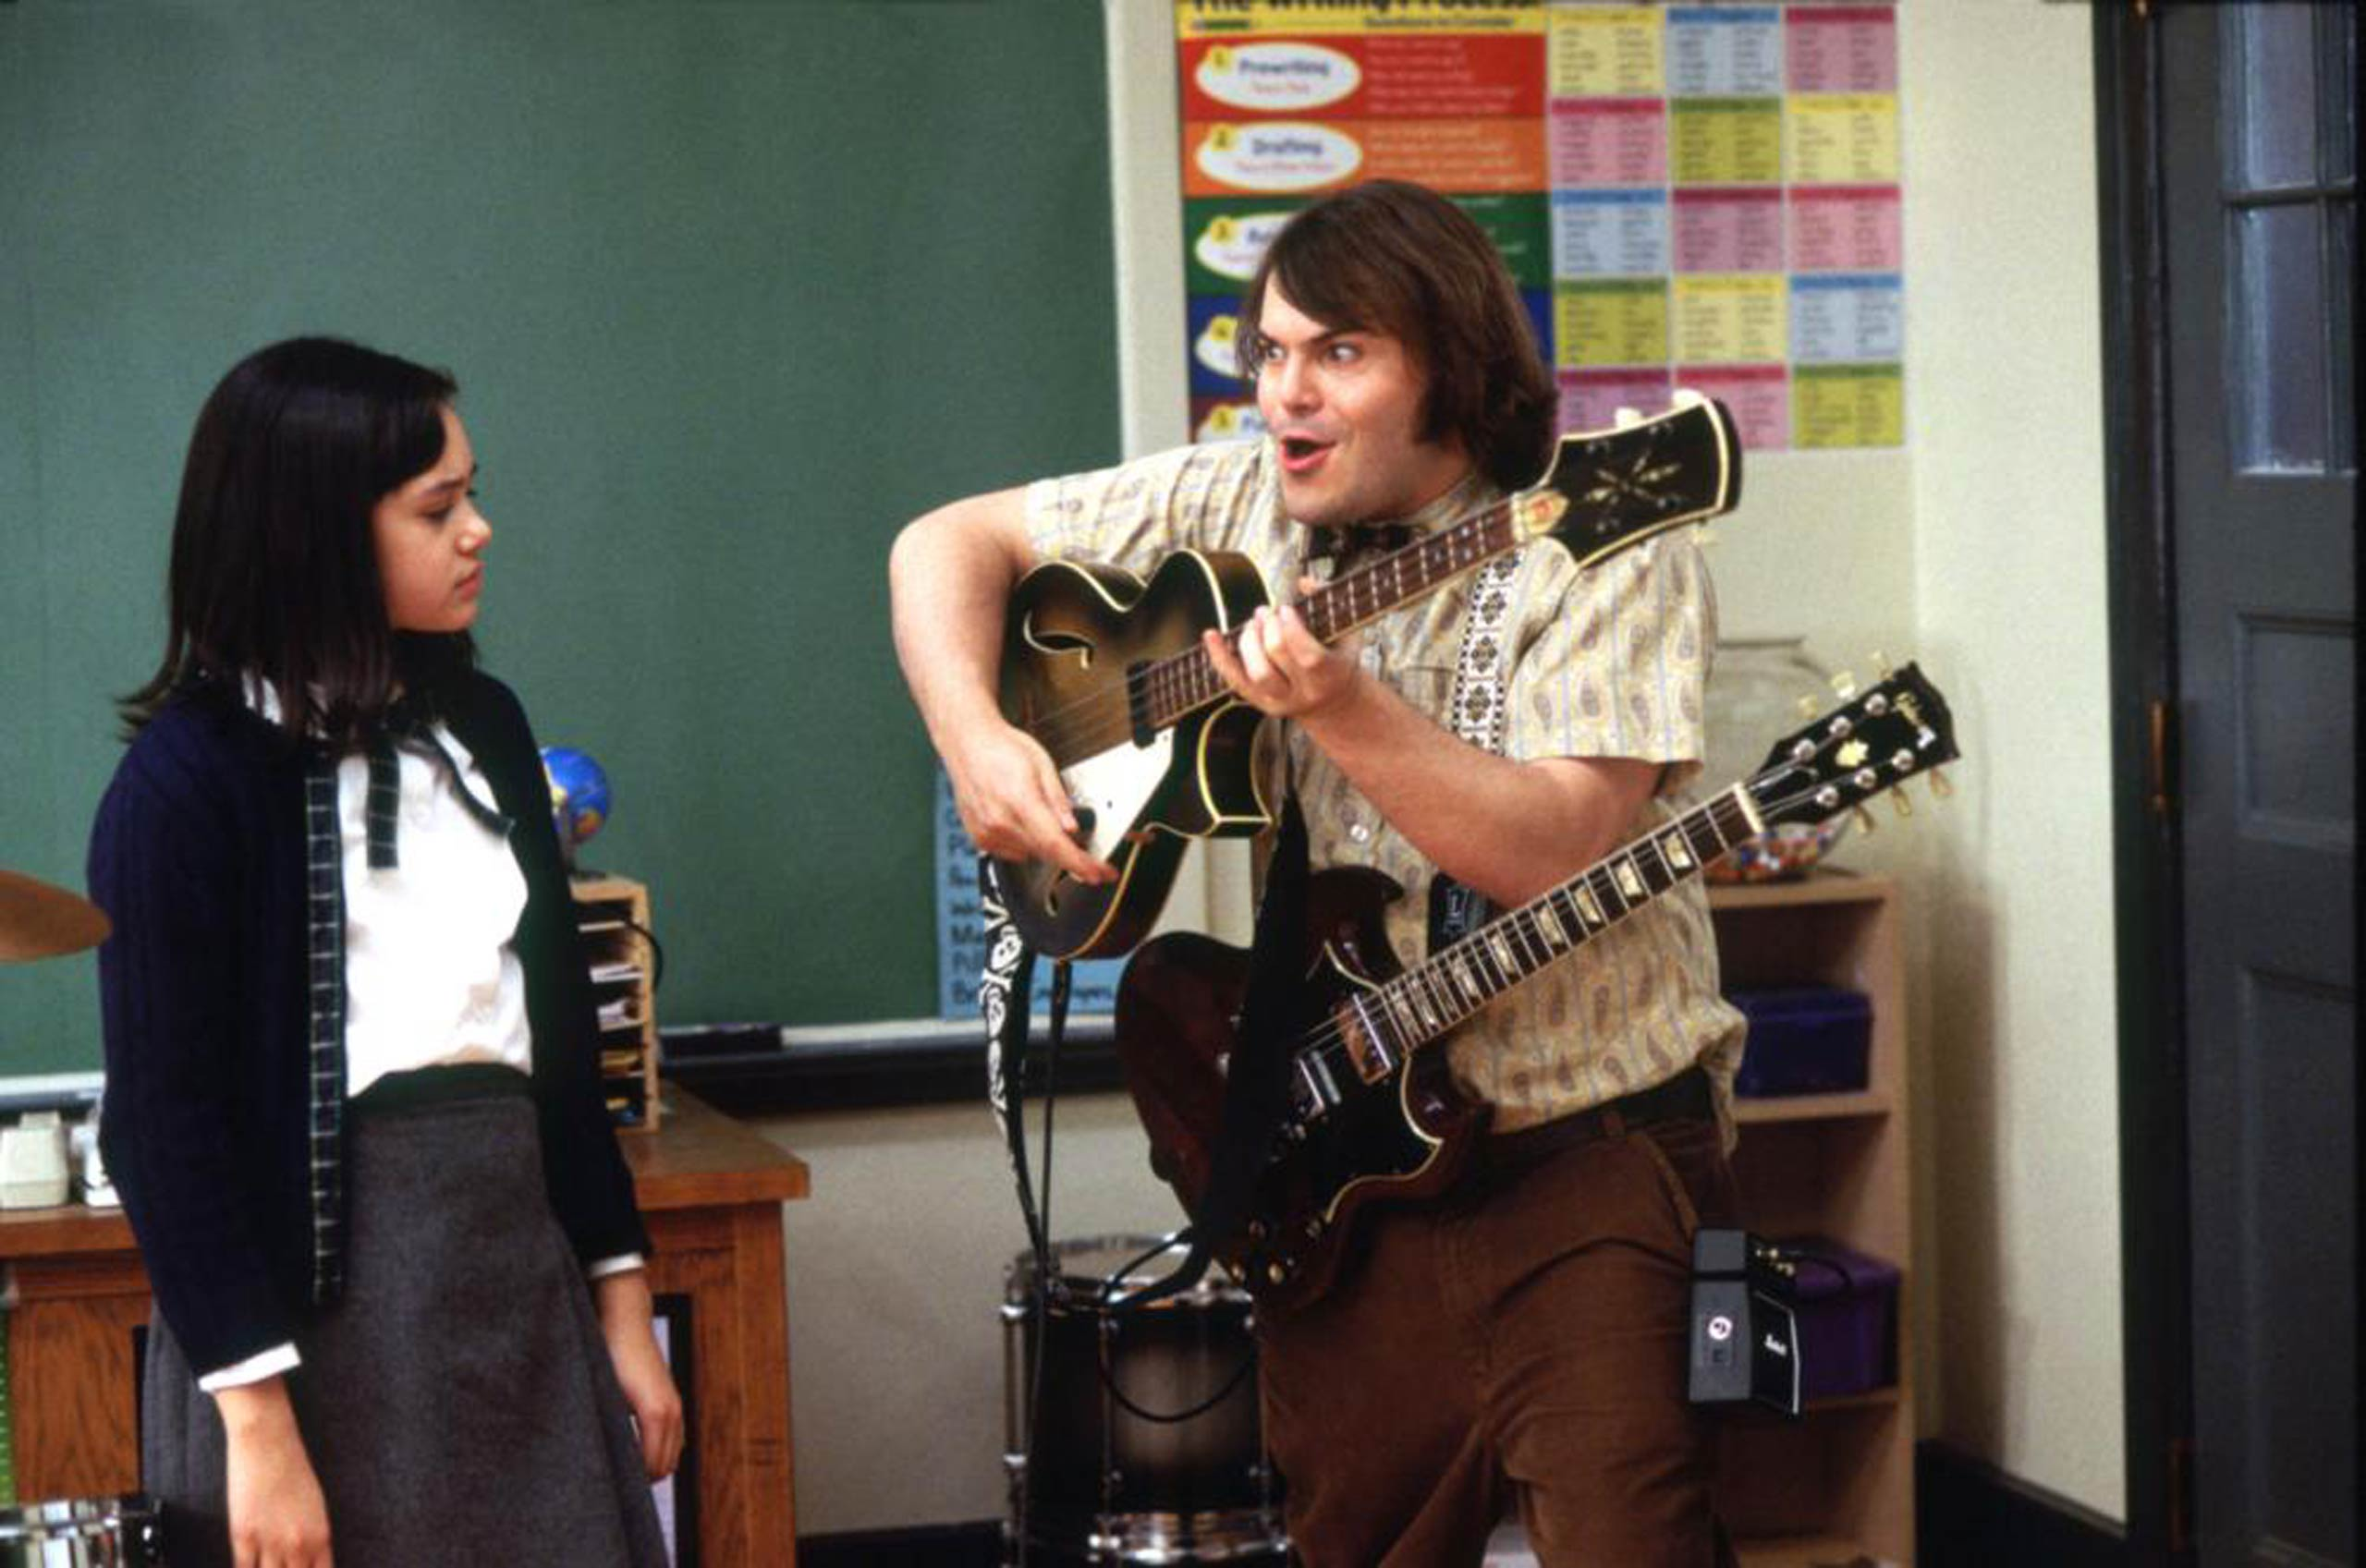 <strong><i>School of Rock</i> (Nickelodeon)</strong>                                                                      Set to air on Nickelodeon, <i>School of Rock</i> will follow a down-on-his-luck musician who pretends to be a substitute teacher at a prep school.